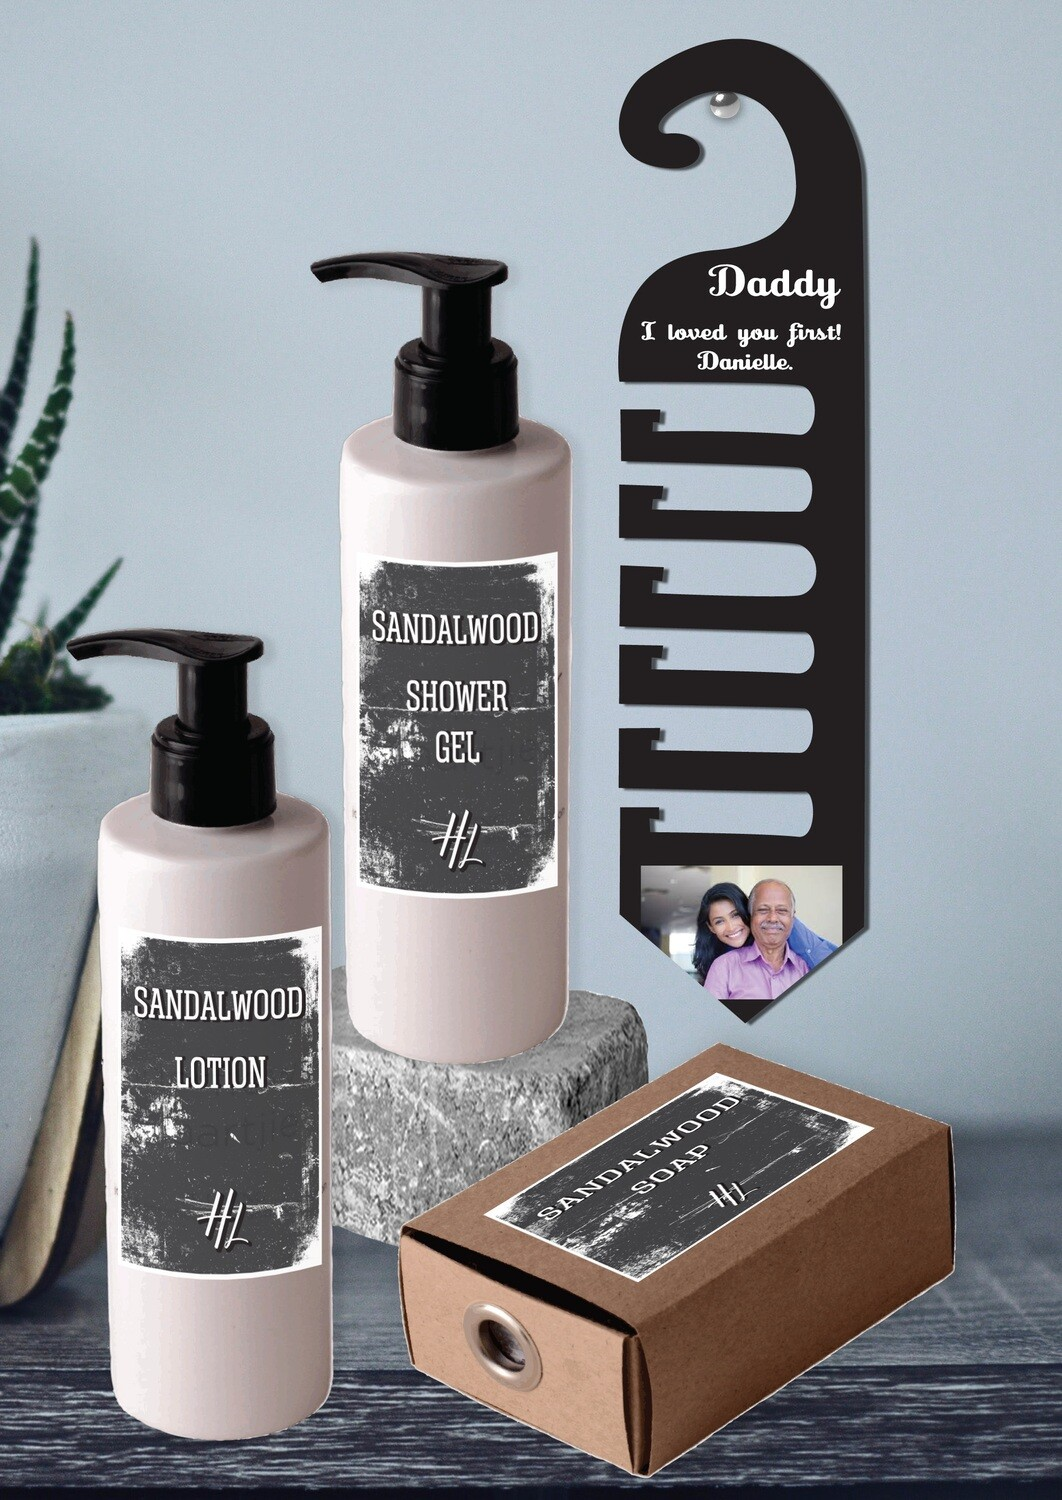 Personalized Photo Tie Hanger & Body Care